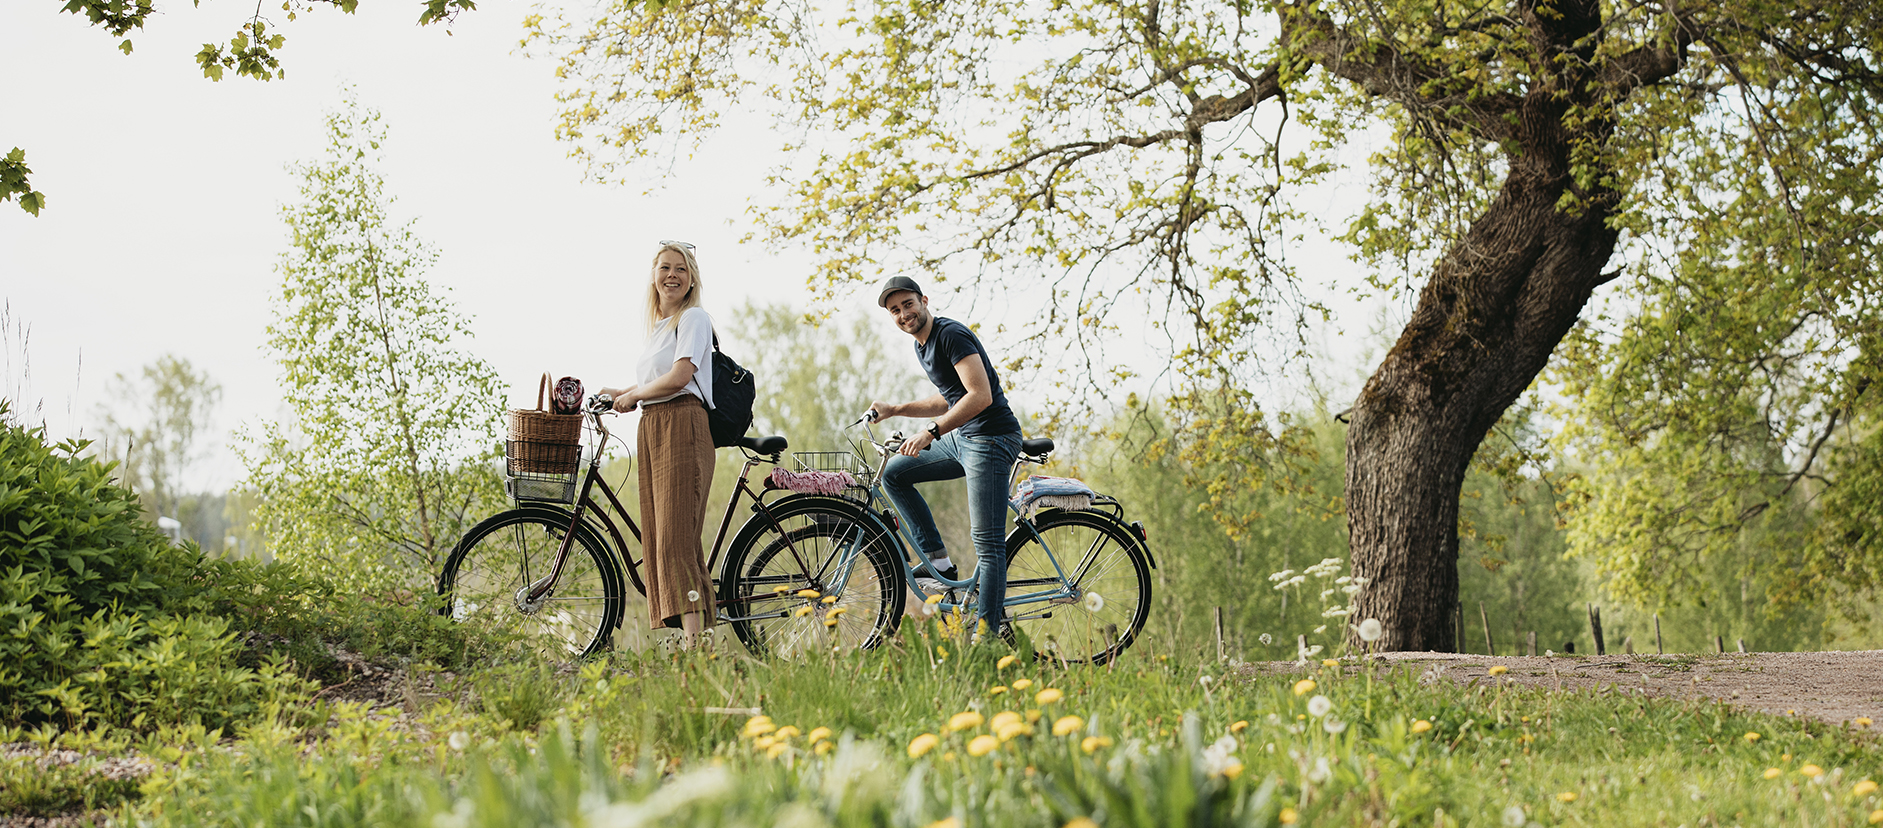 Discover Vimmerby by bike